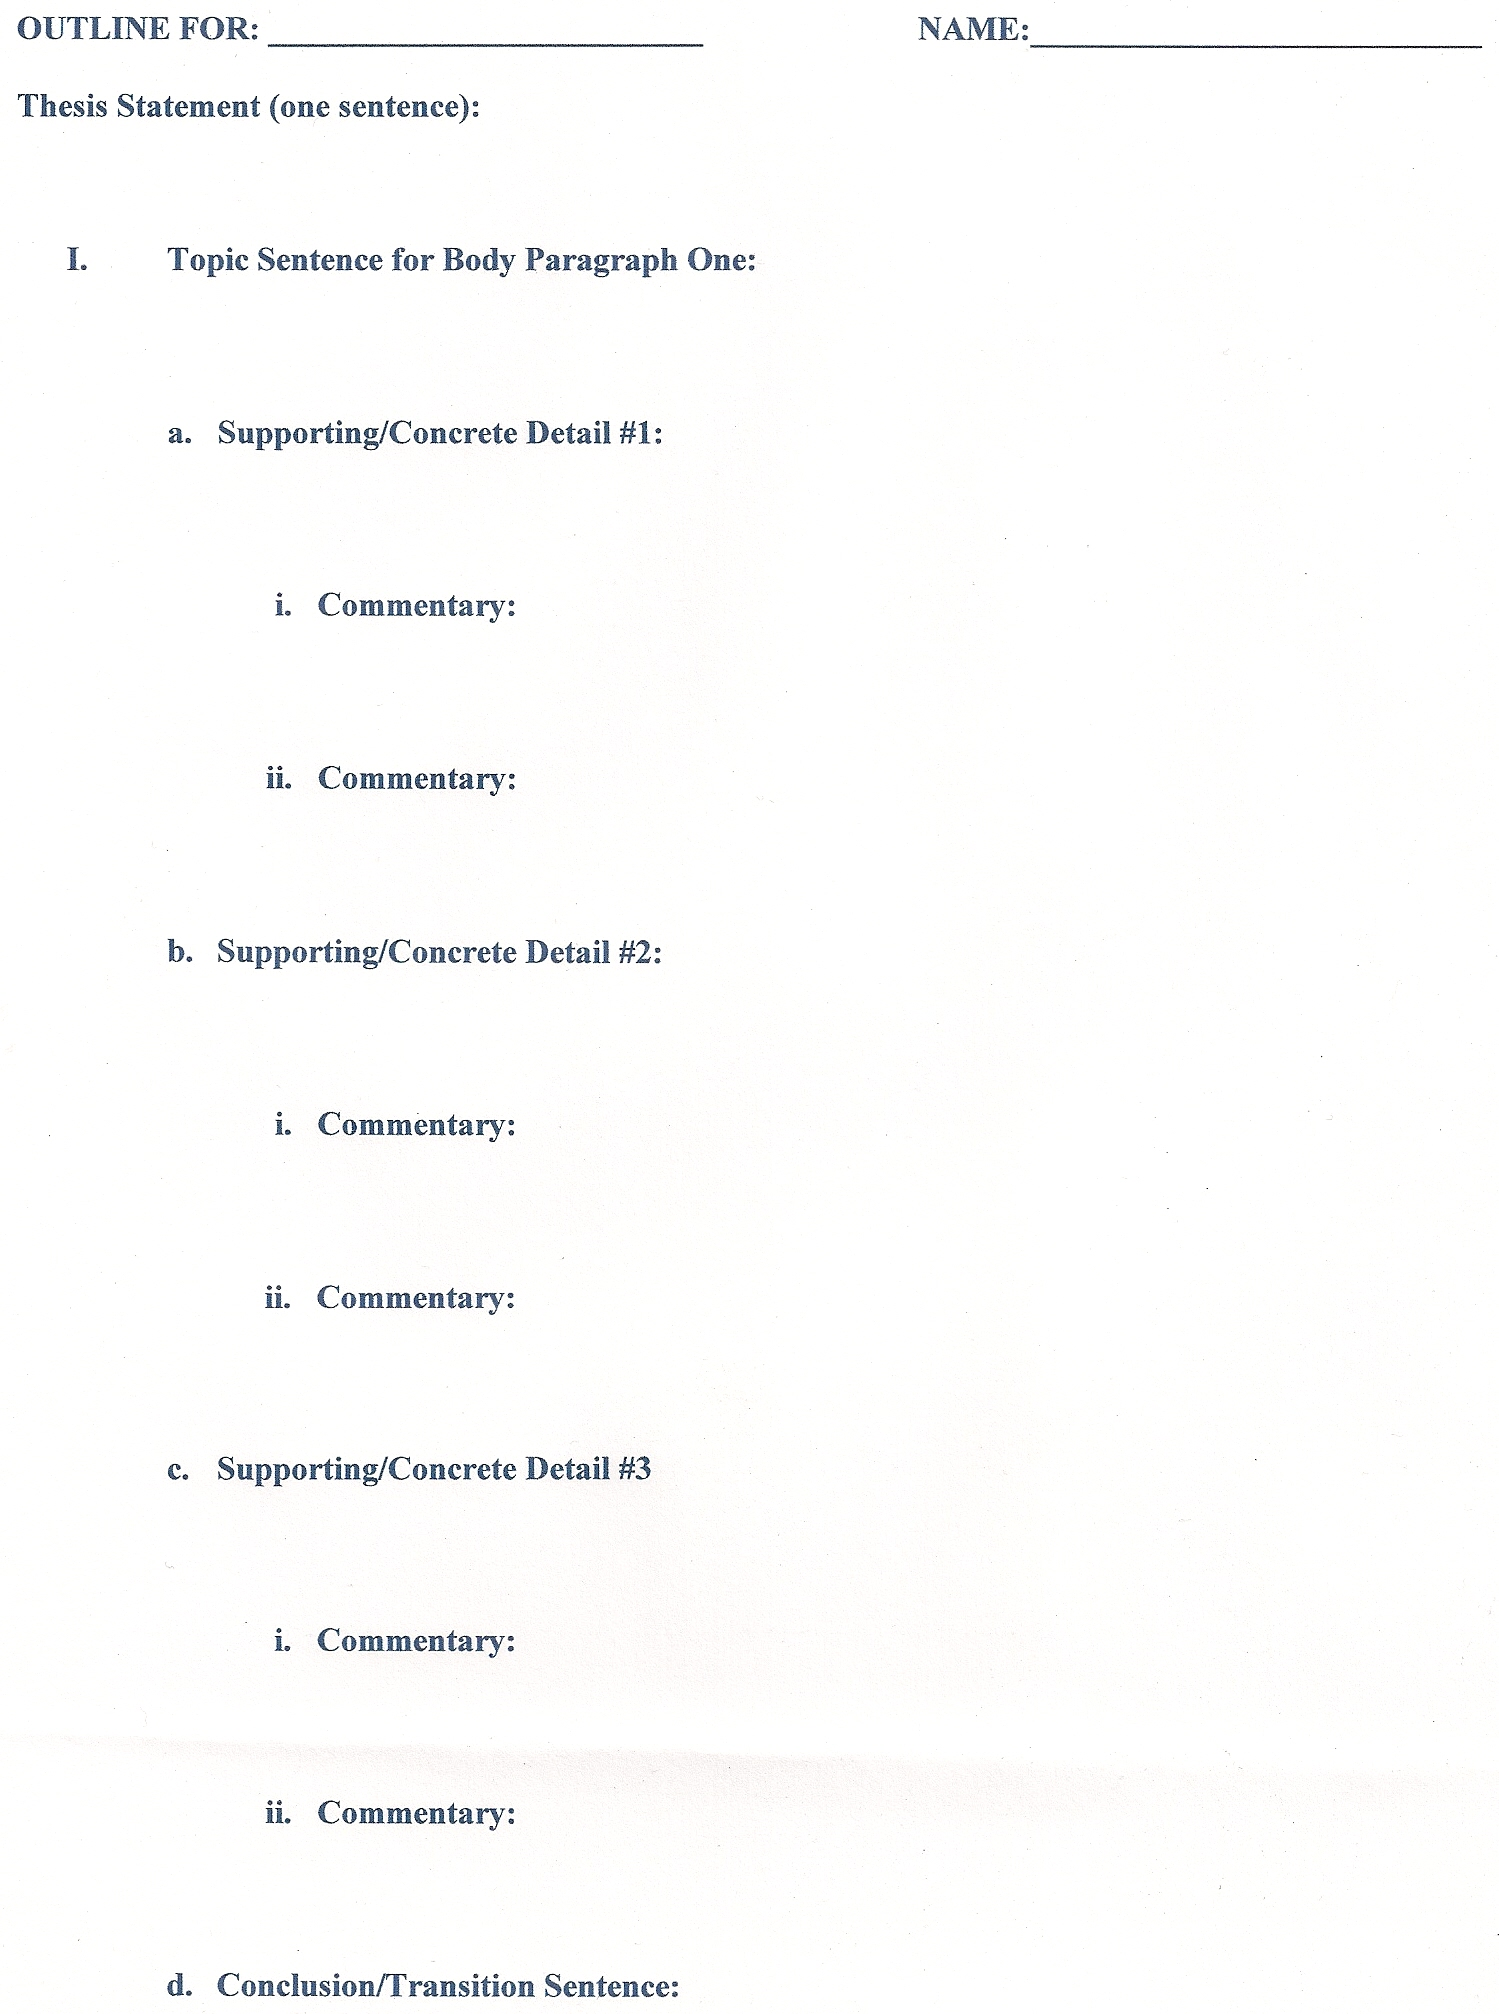 029 Research Paper Formats Outline Singular Format Elementary Writing Ppt Full